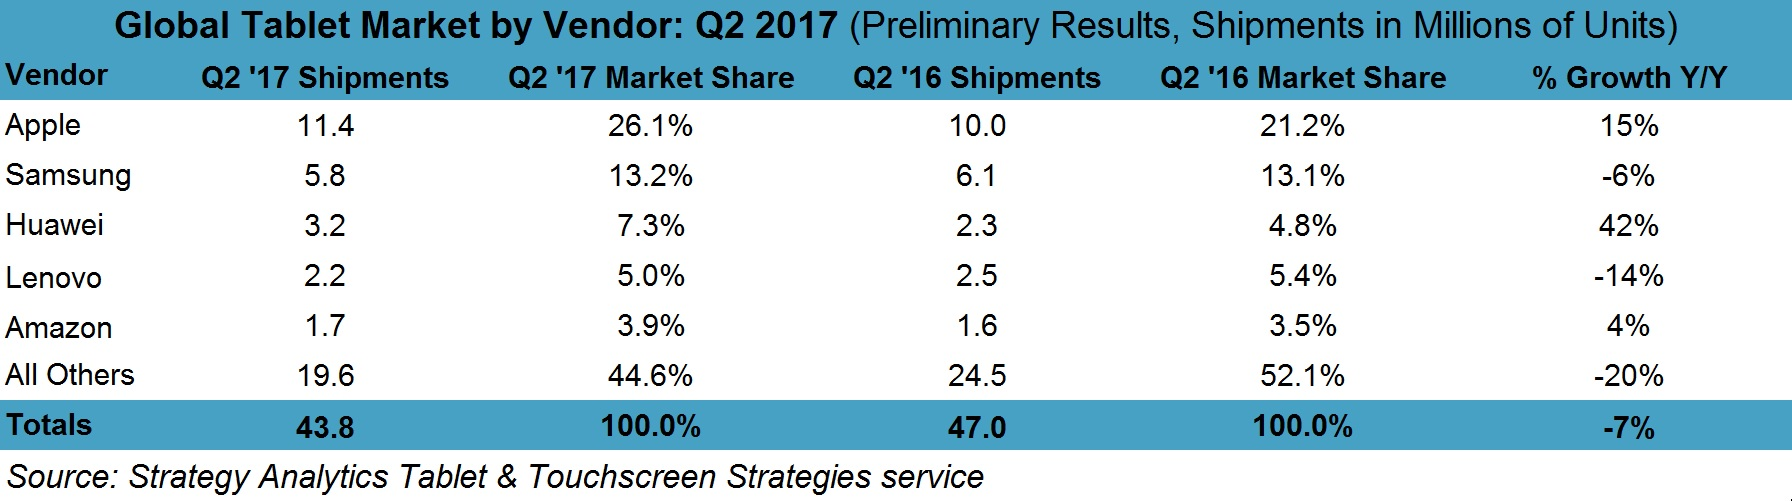 Q2 2017 Preliminary Tablet MS PR Chart